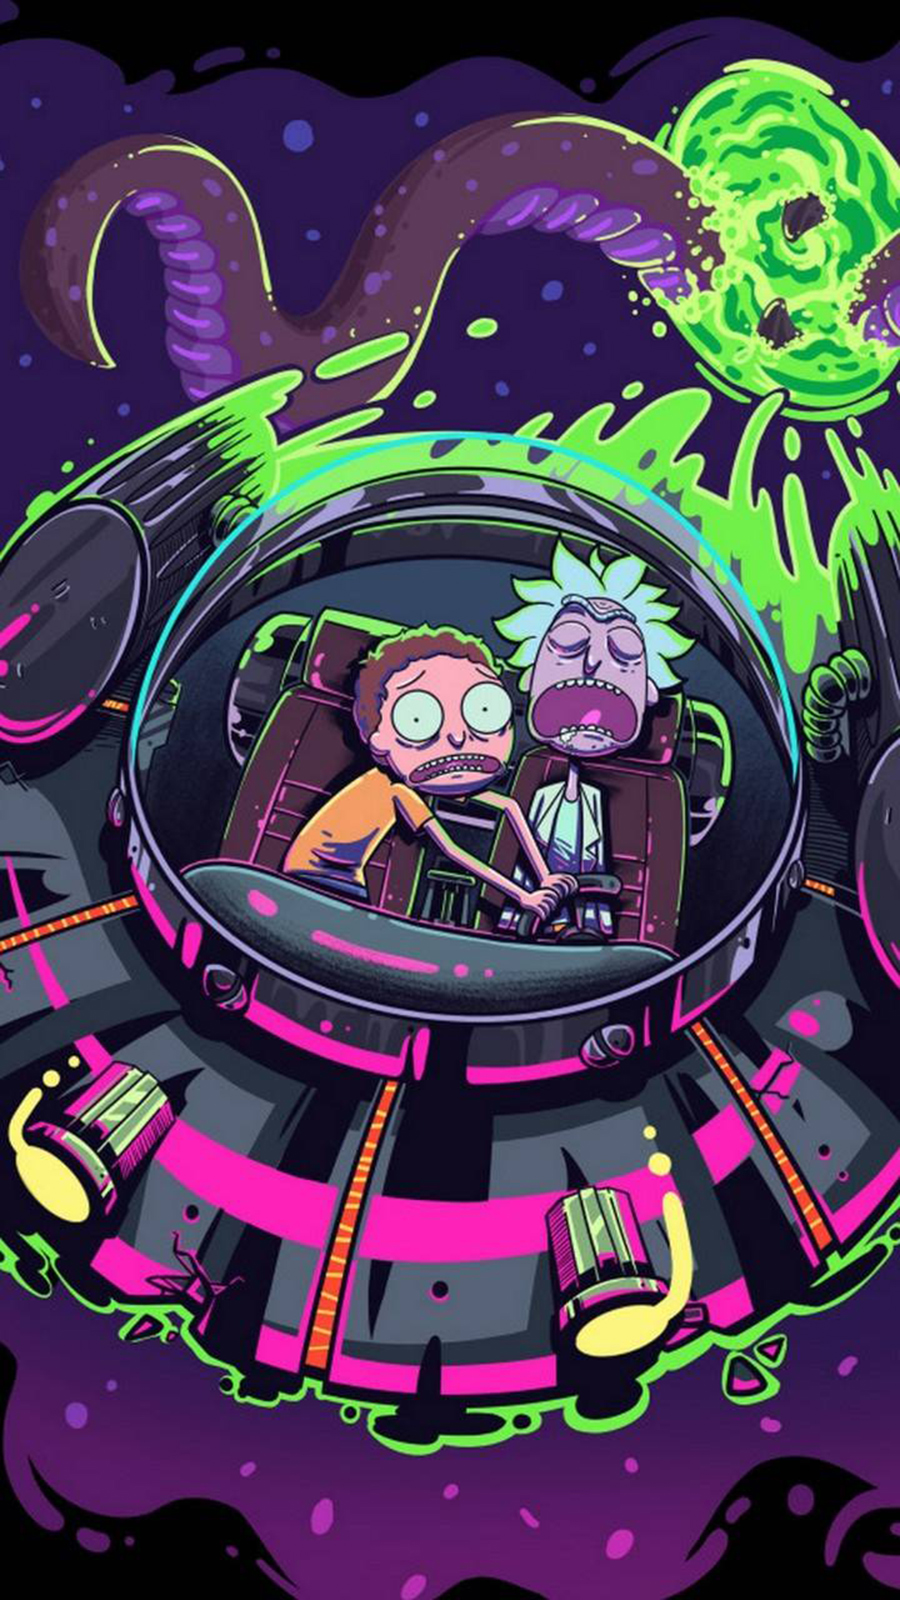 Rick and Morty Wallpapers Free Download For Your Device